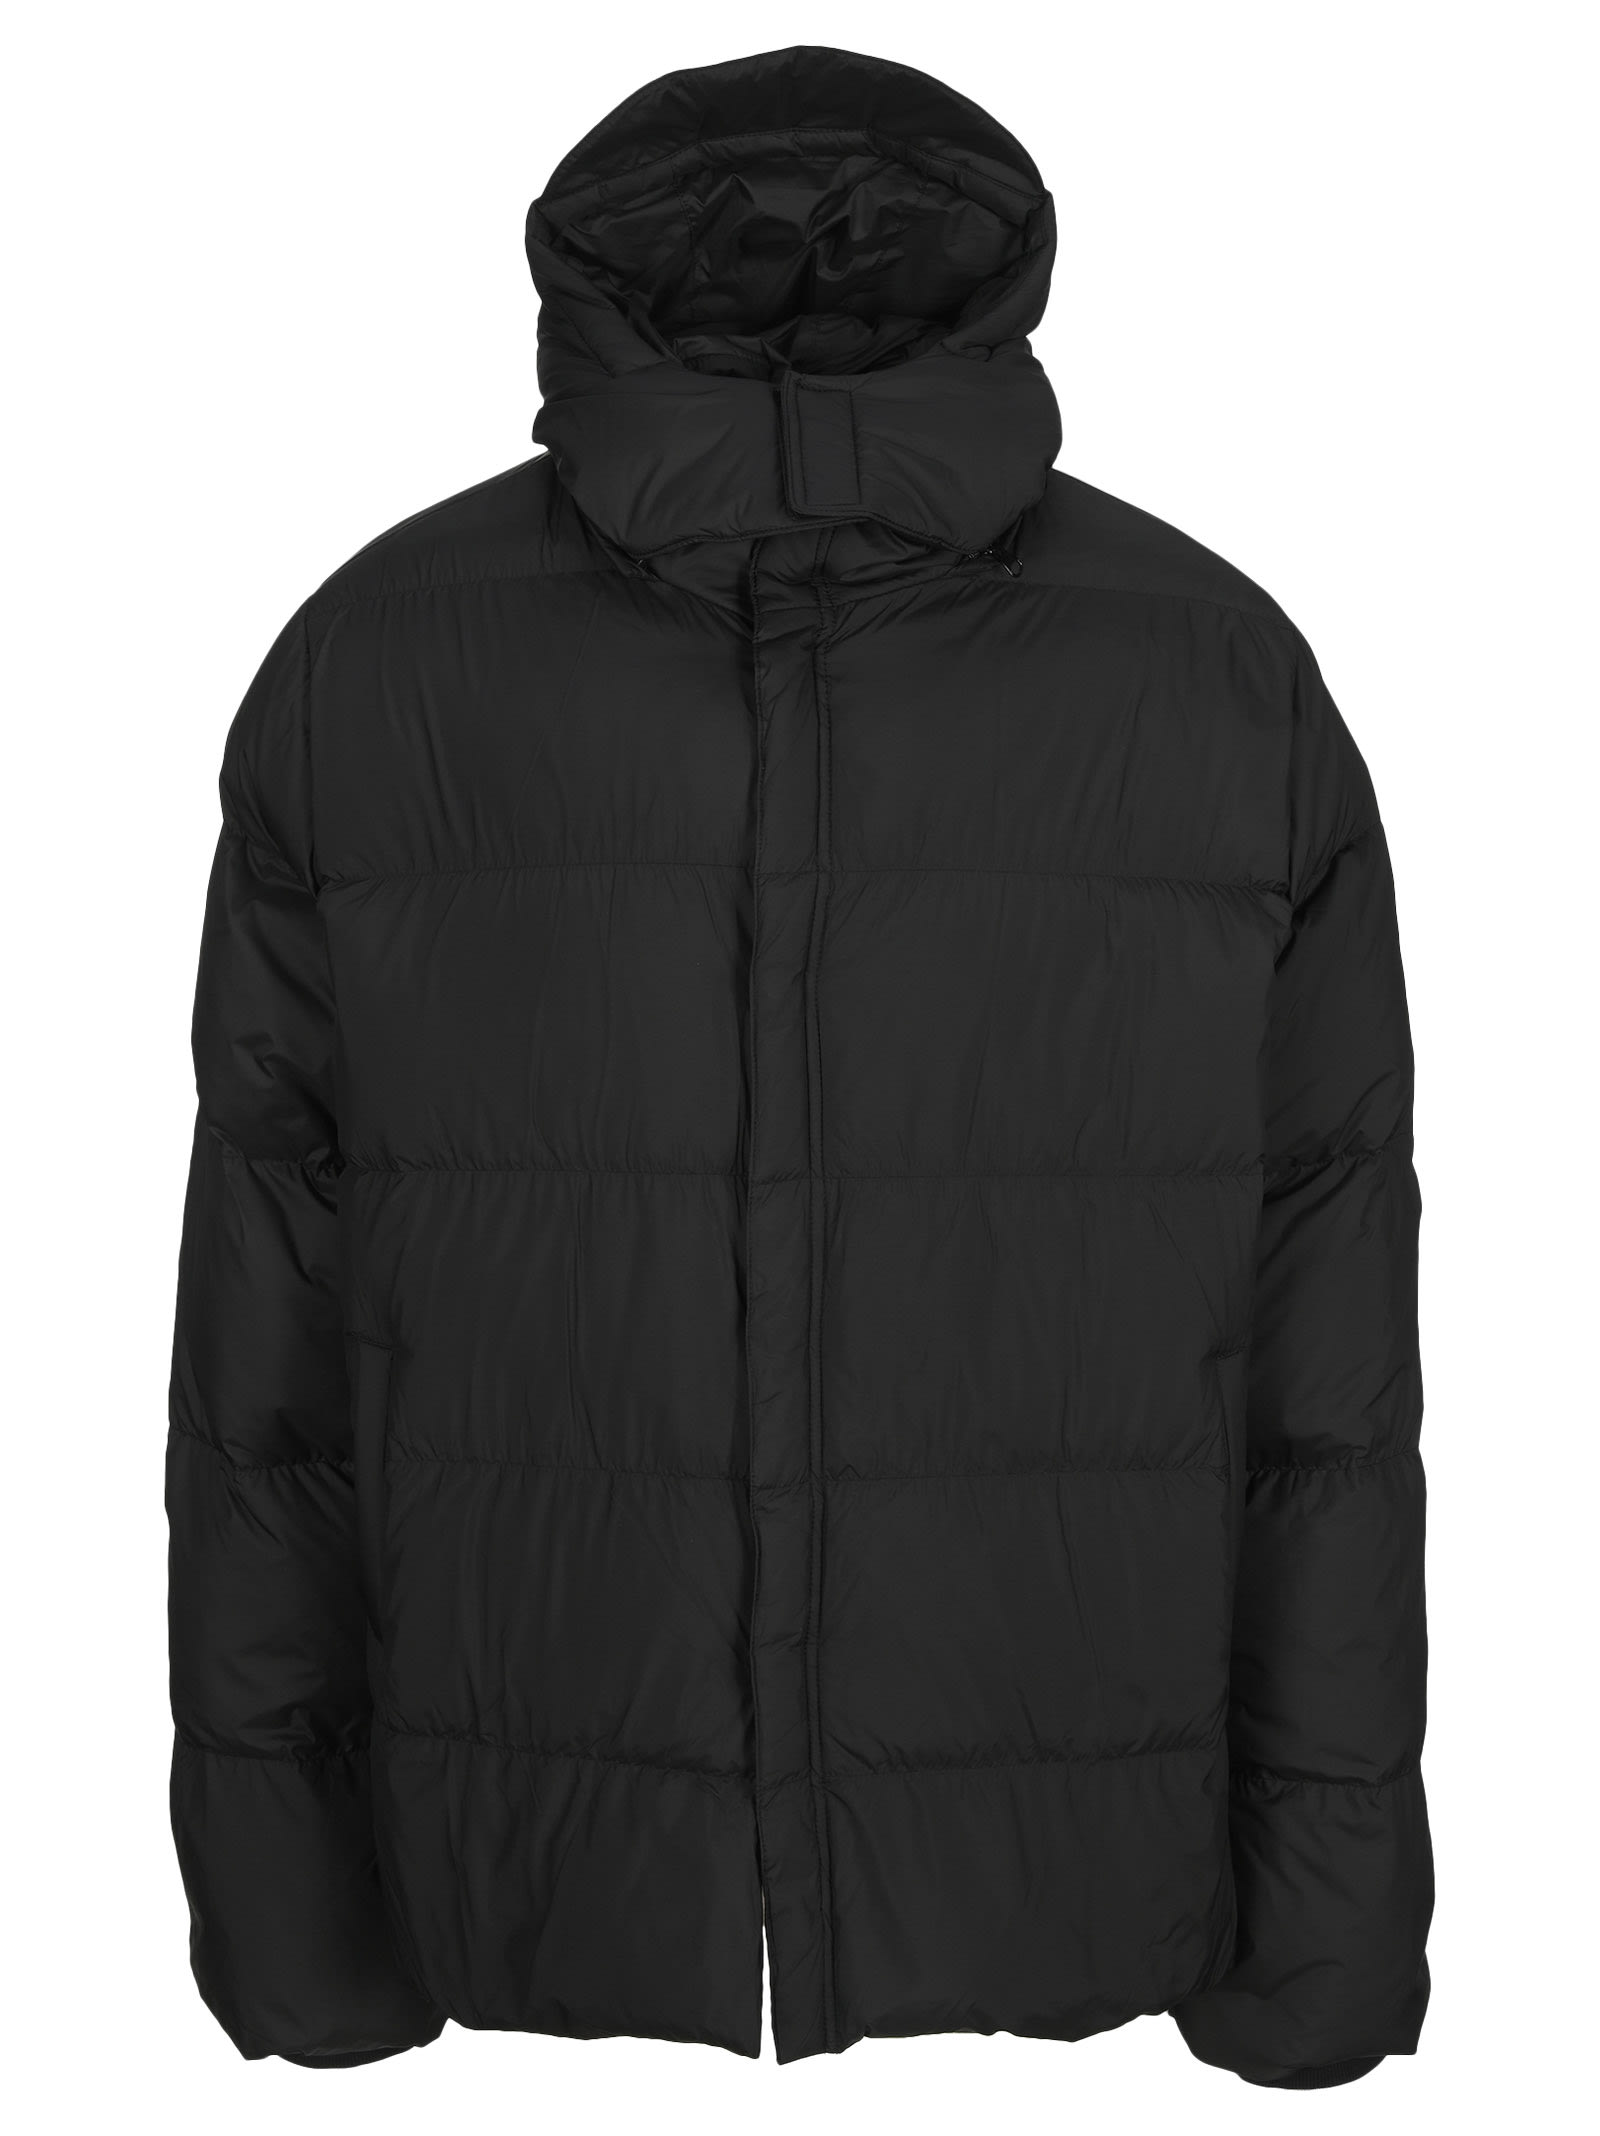 424 Hooded Puffer Jacket